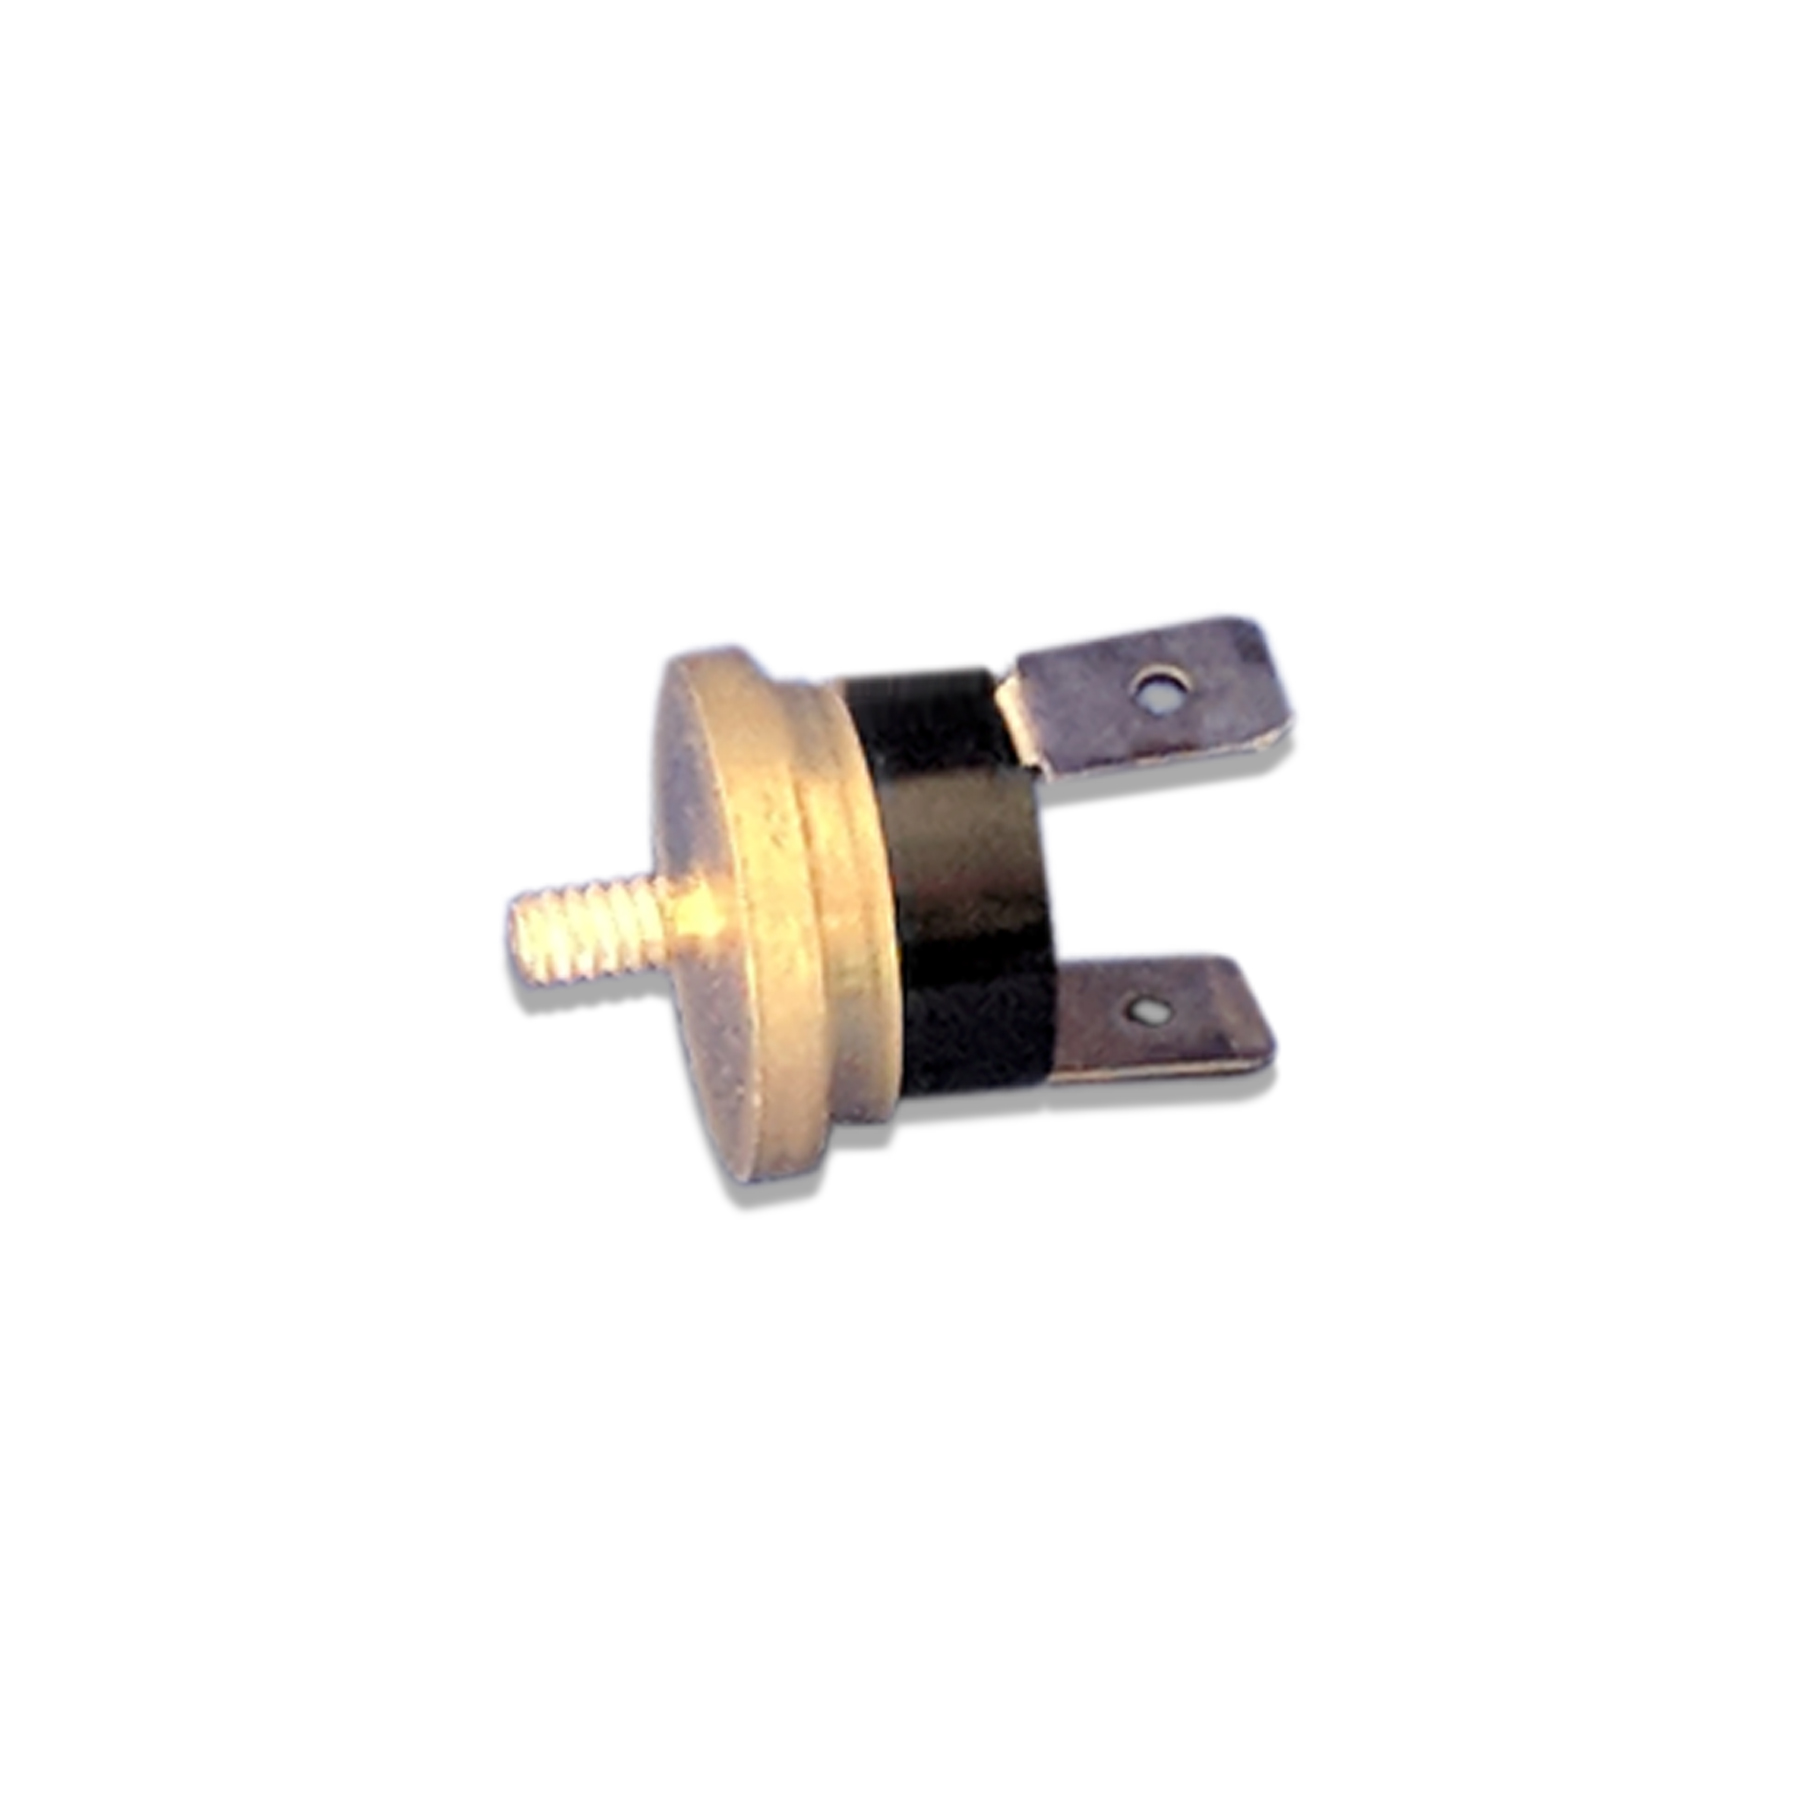 Low Temp Cut-Off Thermostat w/Spade Terminals